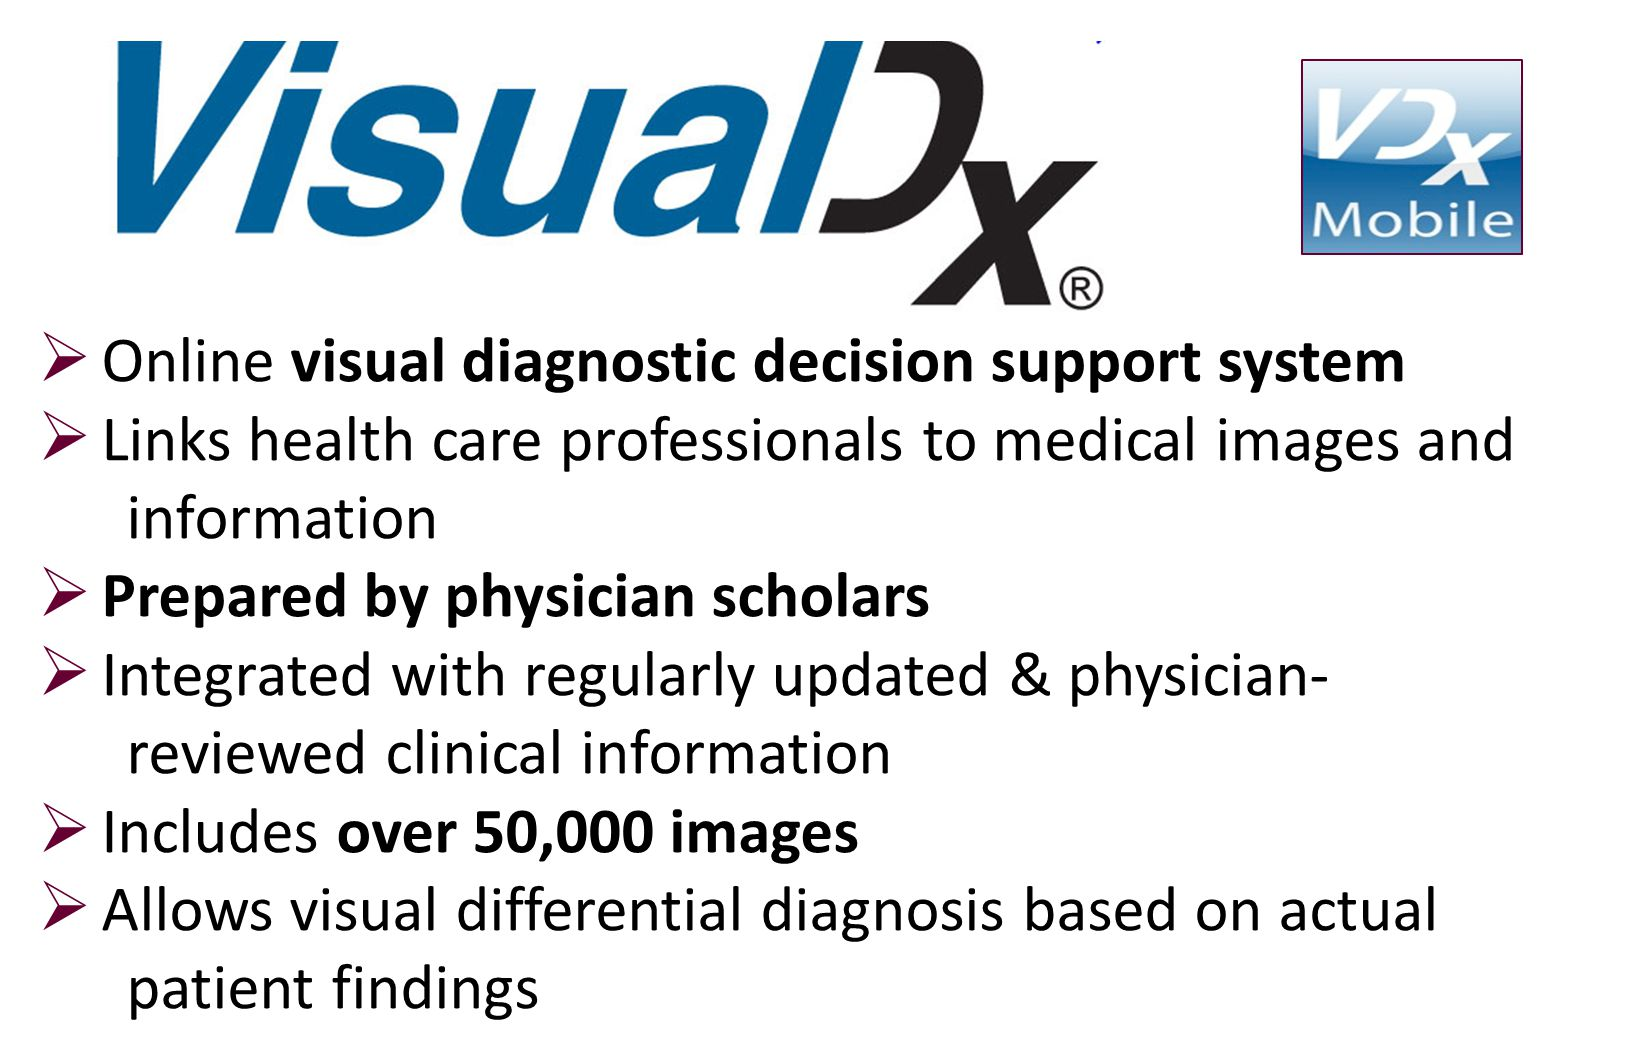 Online visual diagnostic decision support system